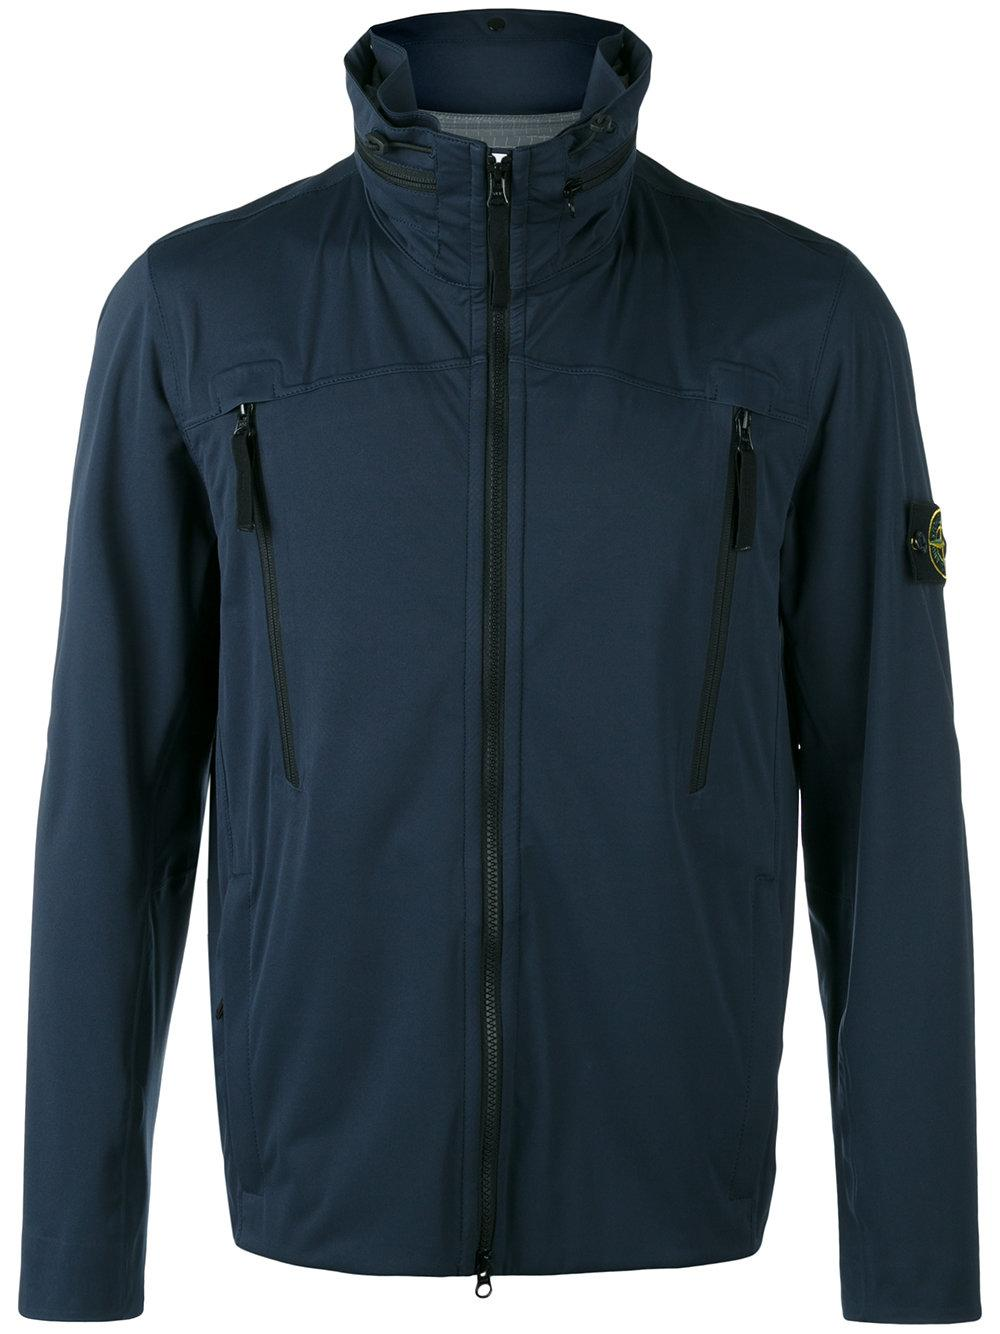 lyst stone island iconic branded windbreaker jacket in blue for men. Black Bedroom Furniture Sets. Home Design Ideas